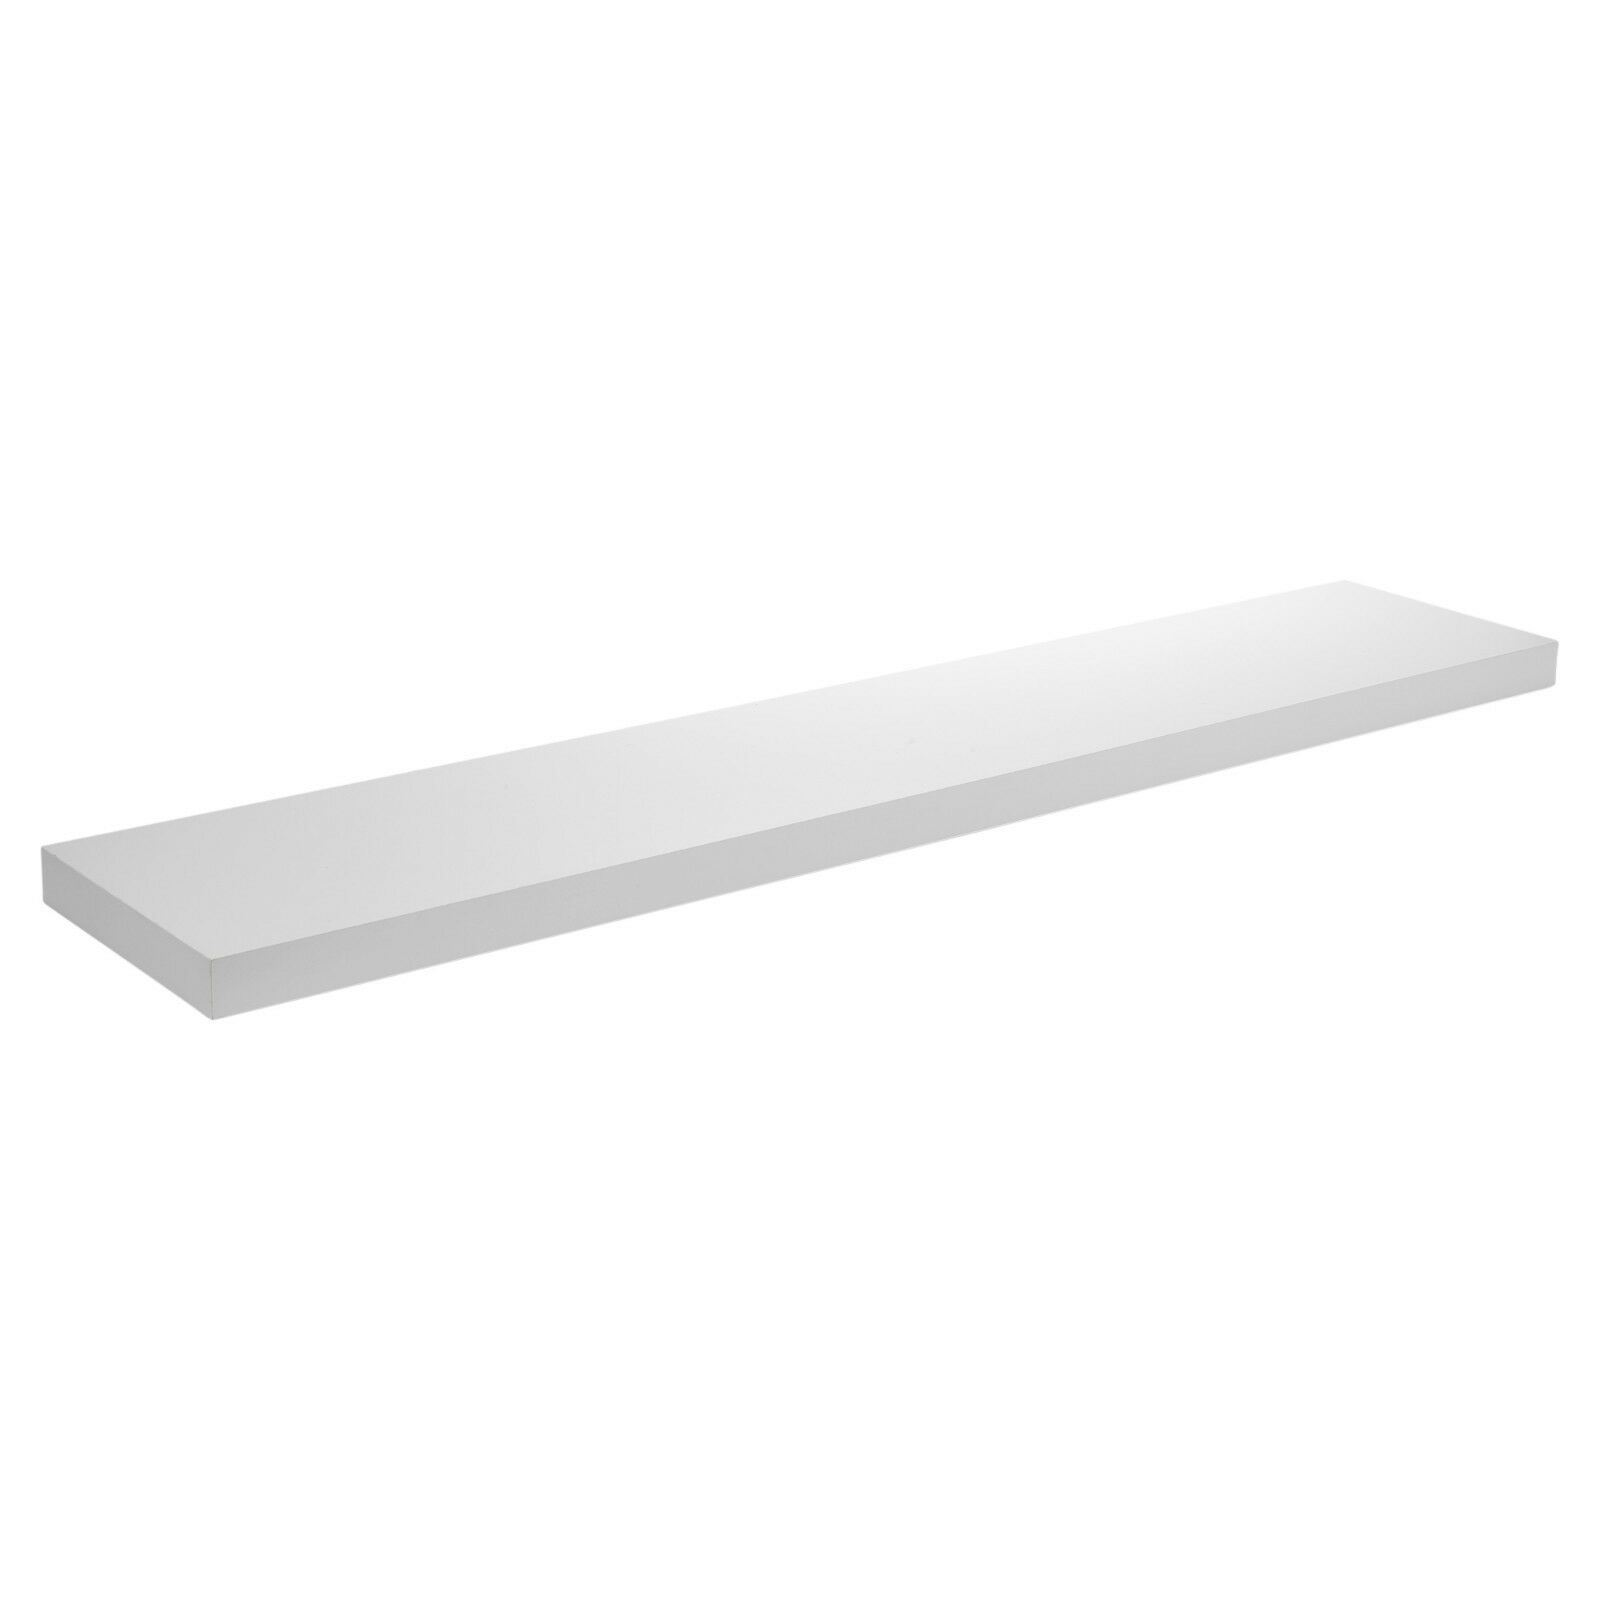 Floating-Wooden-Wall-Shelves-Shelf-Wall-Storage-3-Sizes-White-and-Marble thumbnail 13